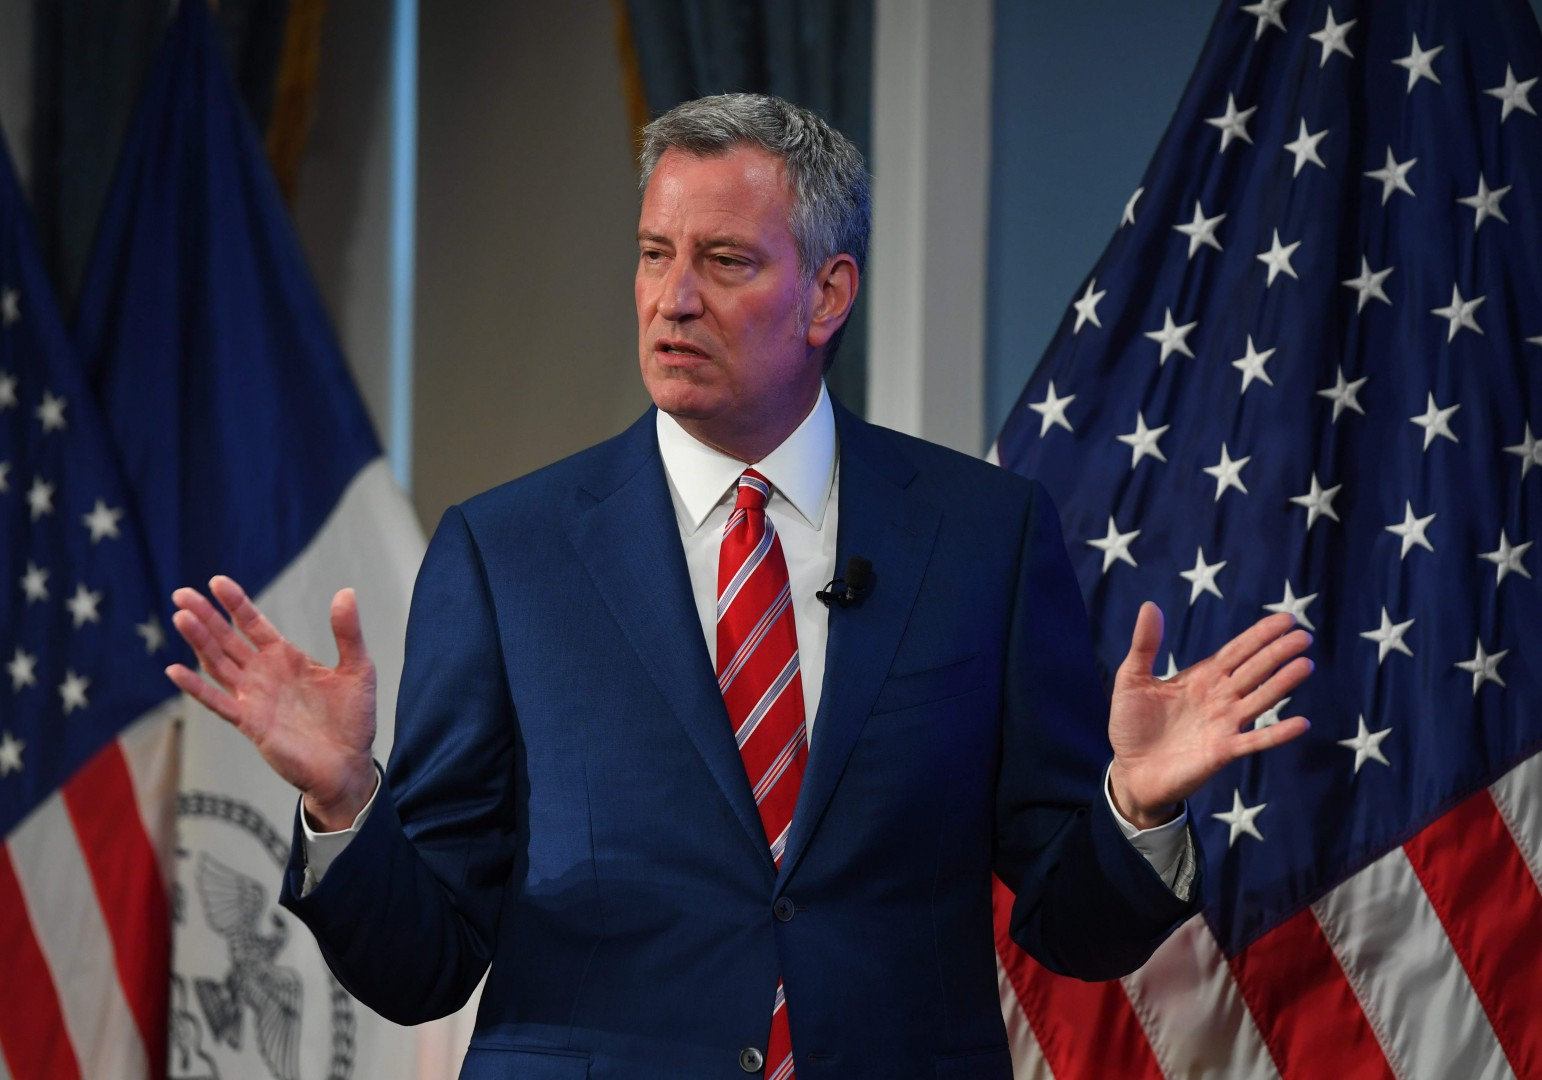 (FILES) In this file photo taken on April 26, 2017 New York City Mayor Bill de Blasio speaks as he presents the FY 2018 Executive Budget during a press conference at City Hall in New York. A nine-month-old baby, traumatized children, many with lice, bedbugs or contagious diseases: New York's mayor was shocked on June 20, 2018 that at least 239 minors arrived incognito after being separated from parents on the Mexican border. / AFP PHOTO / TIMOTHY A. CLARY